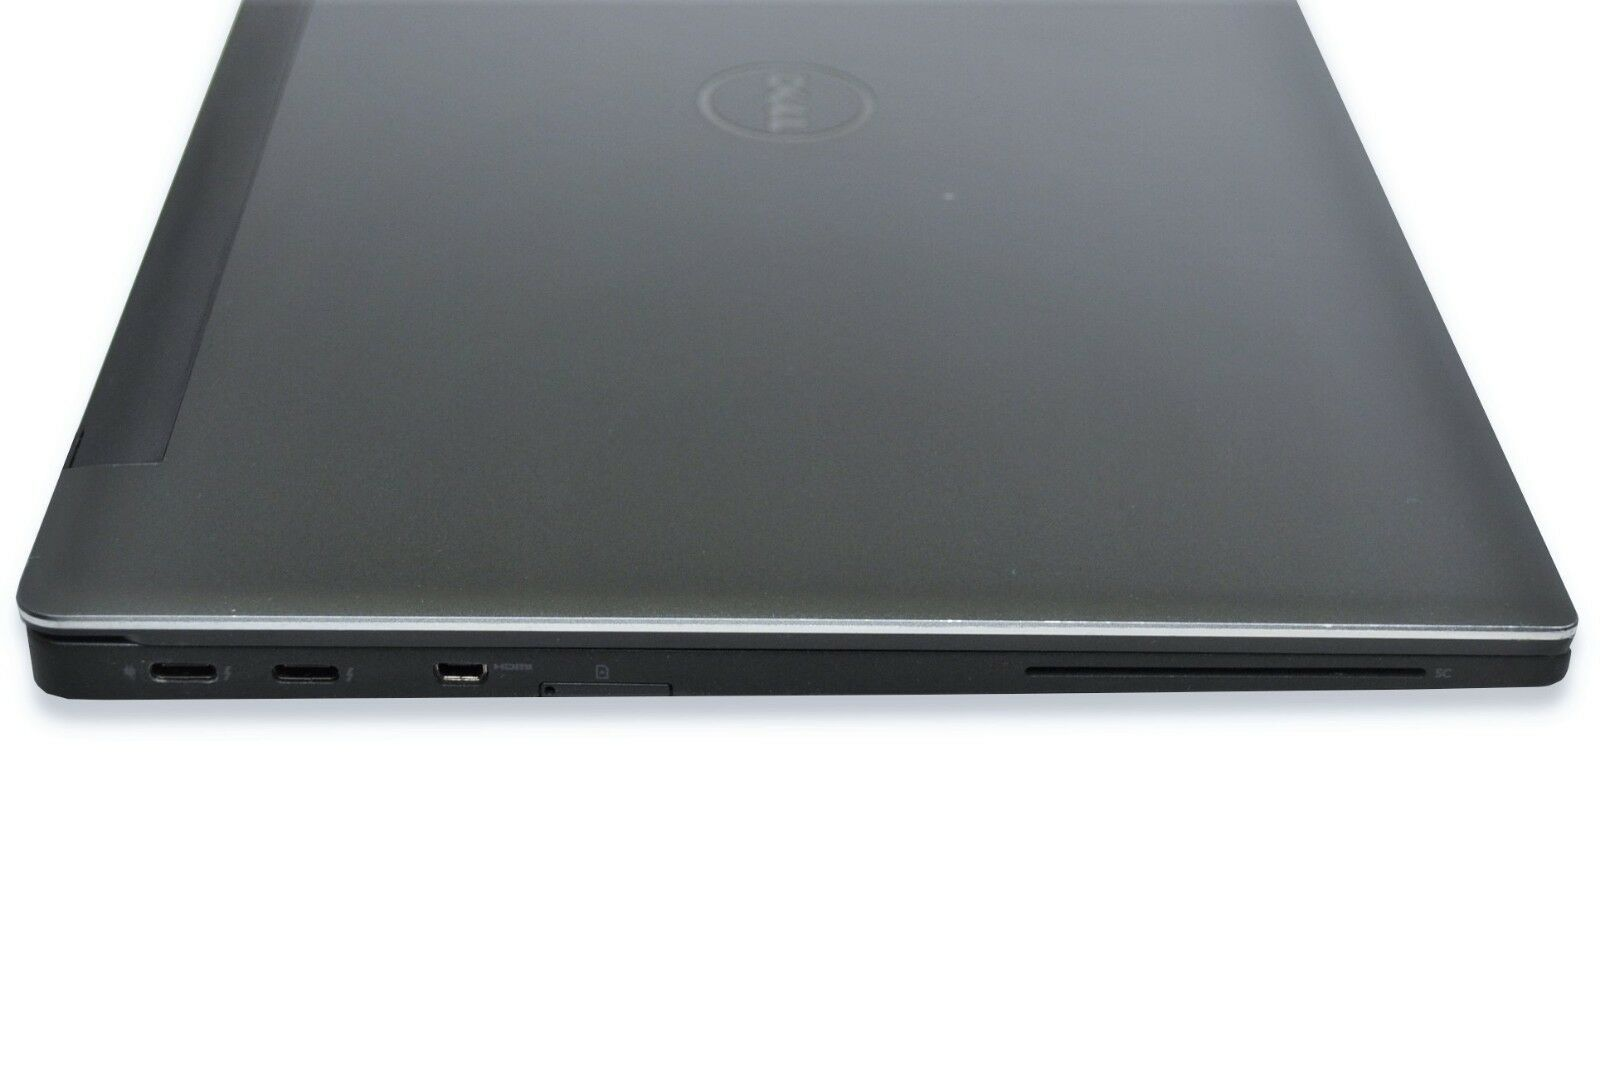 Dell Latitude E7370 IPS Ultrabook: 16GB RAM, 240GB, LTE, VAT, Warranty - CruiseTech